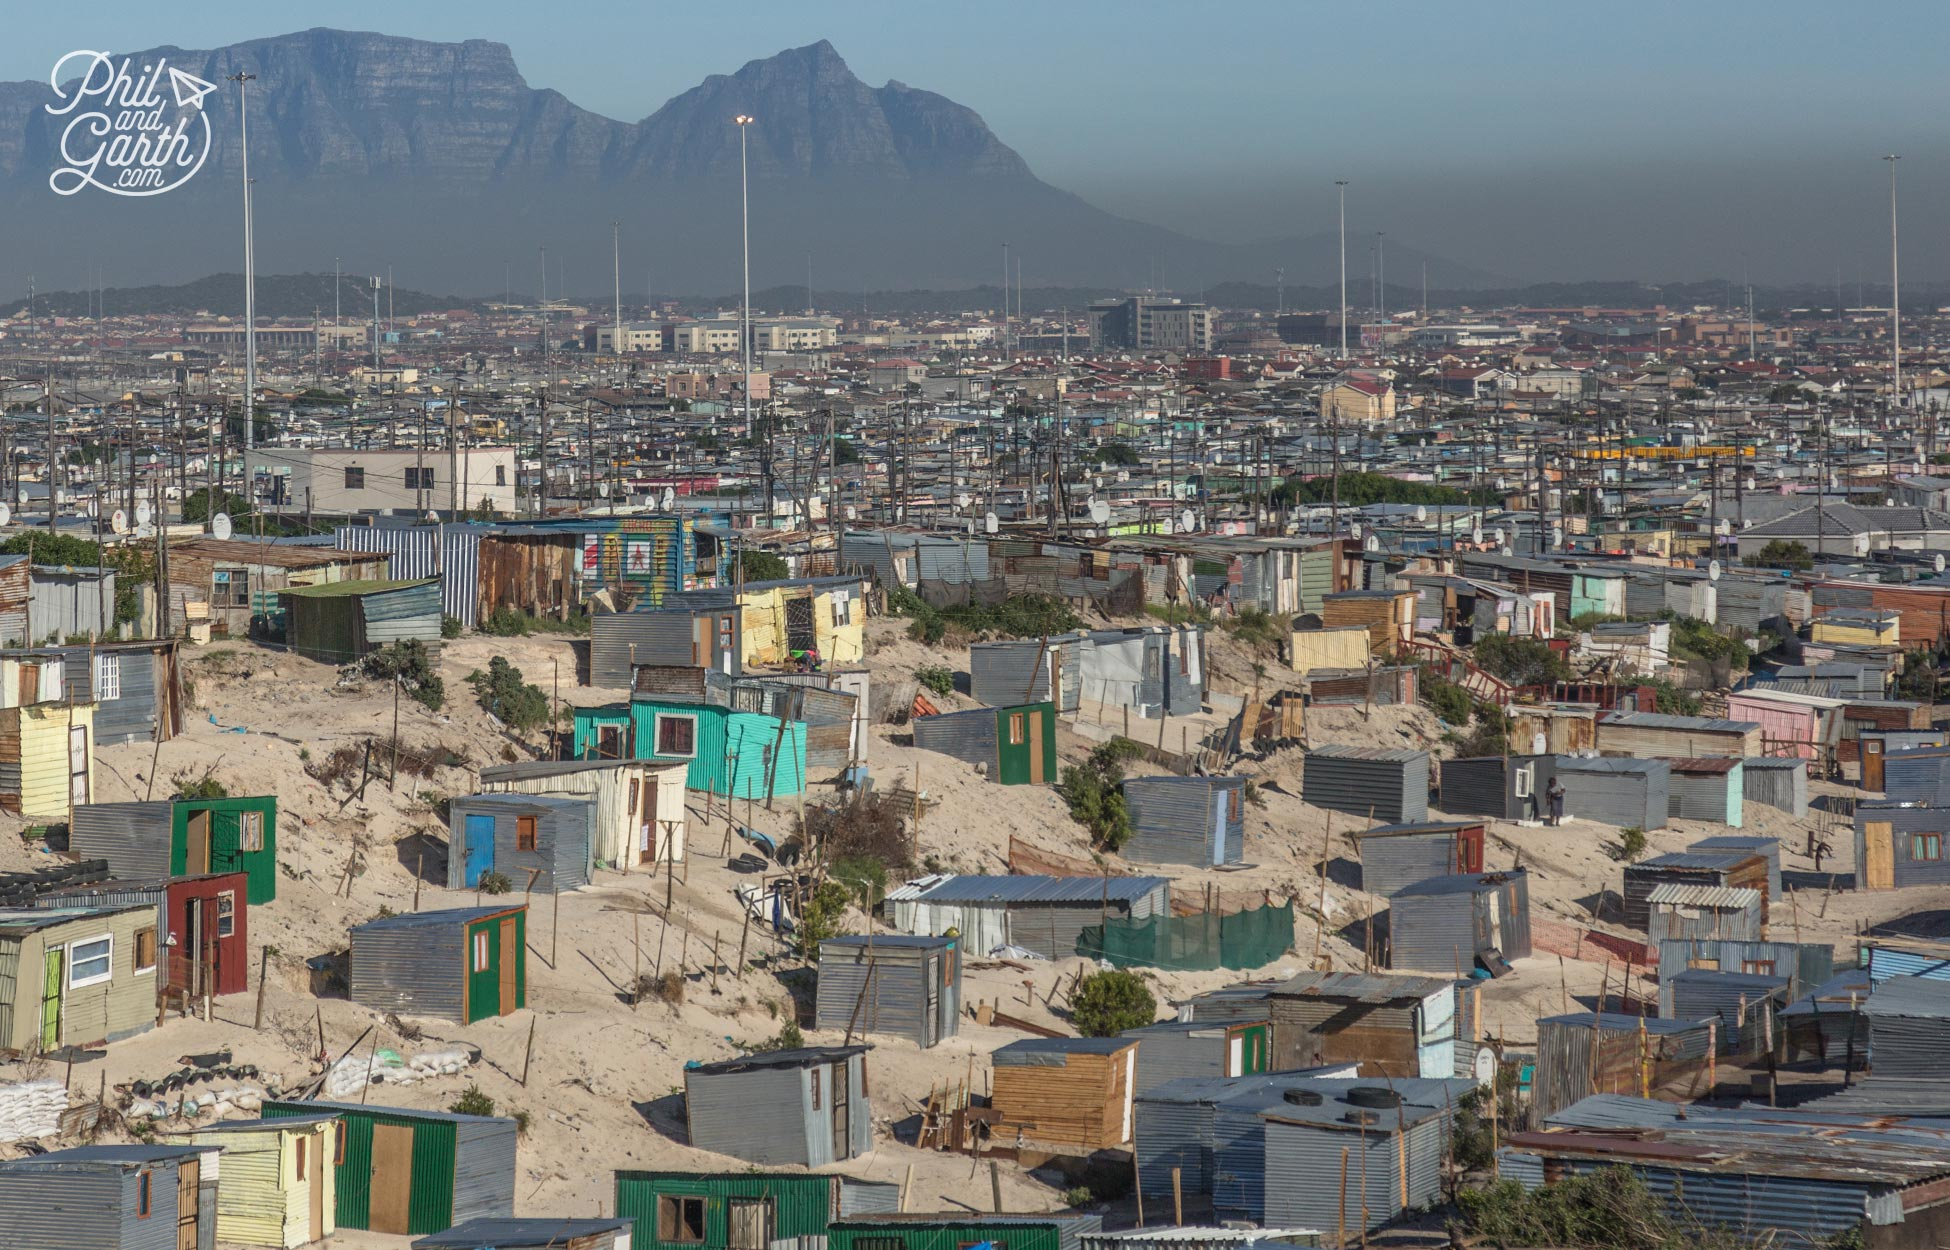 Cape Flats townships outside Cape Town, look at that layer of smog!